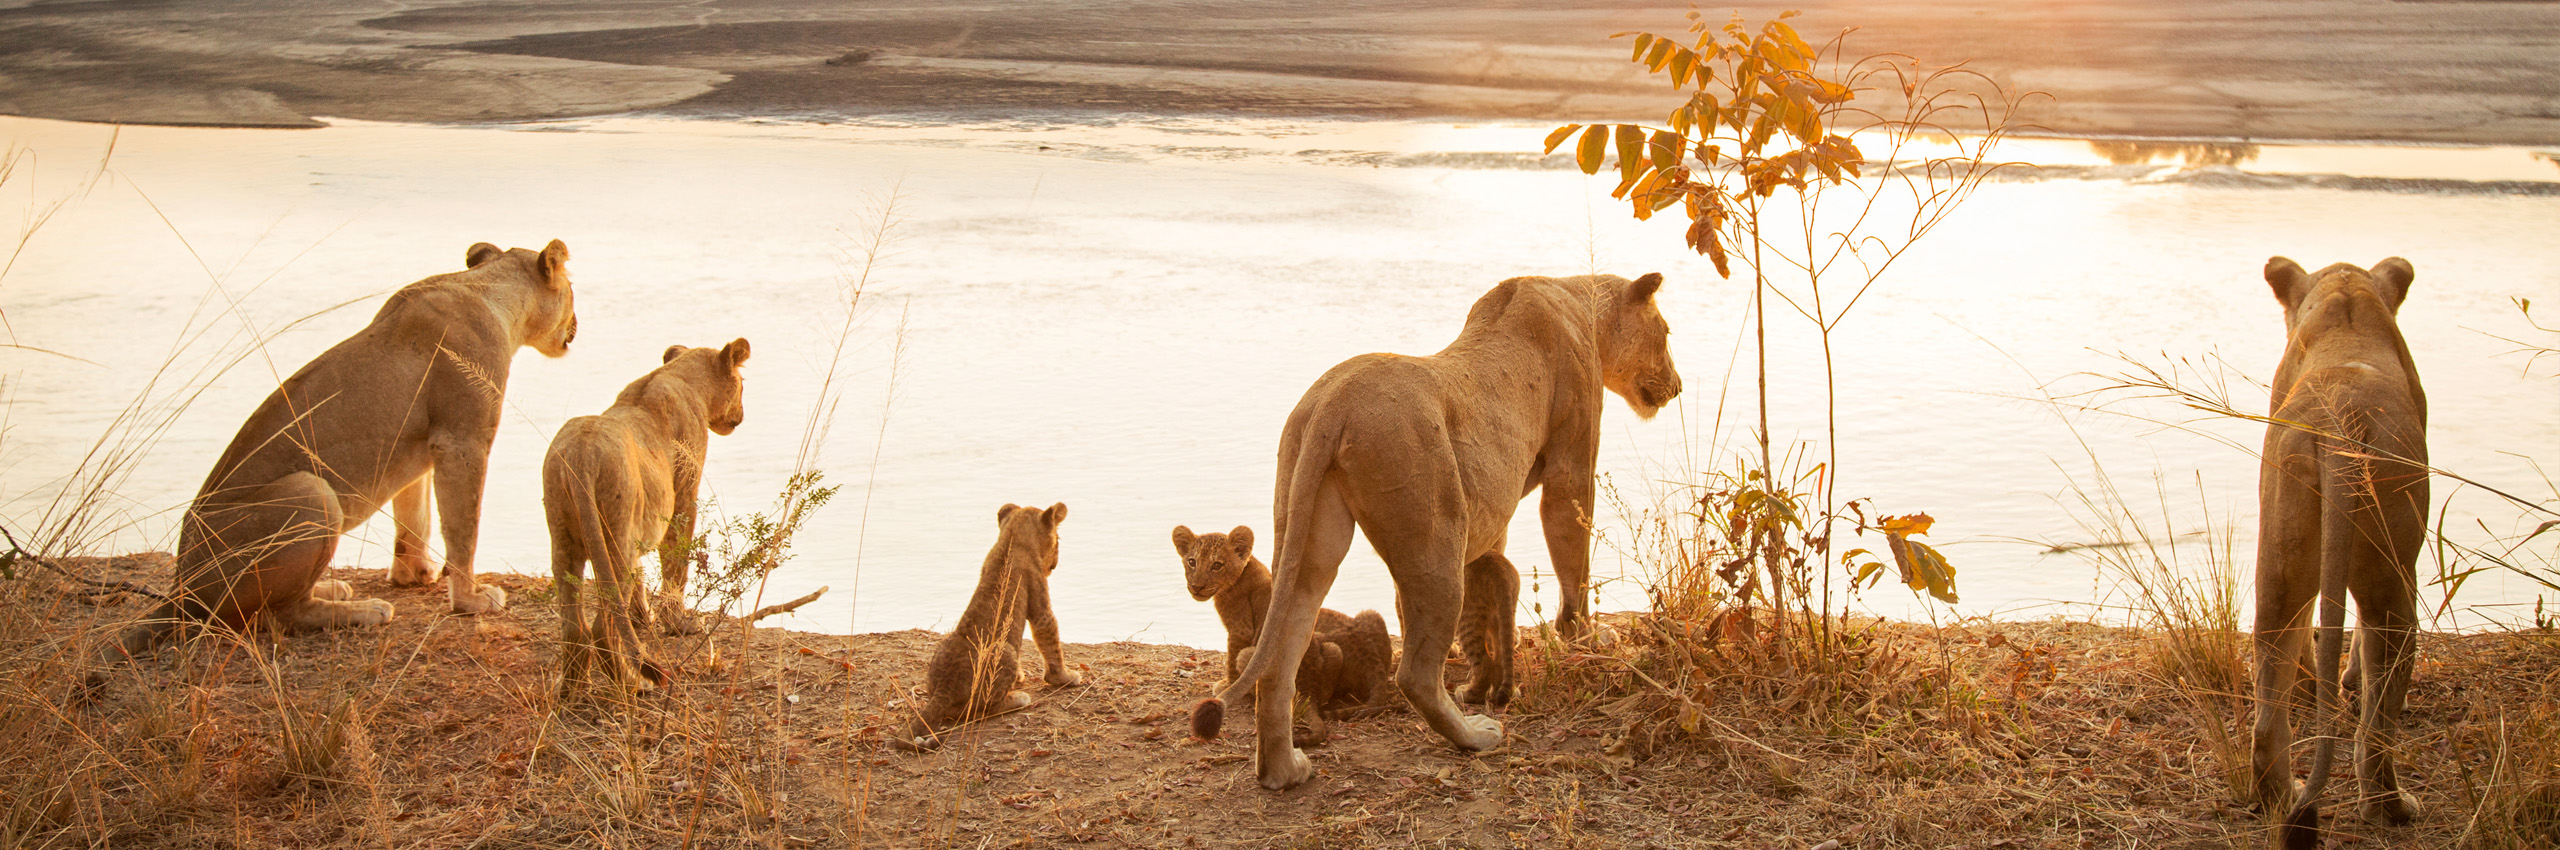 77483685 | Zambia | © Philip Lee Harvey/HUBER IMAGES